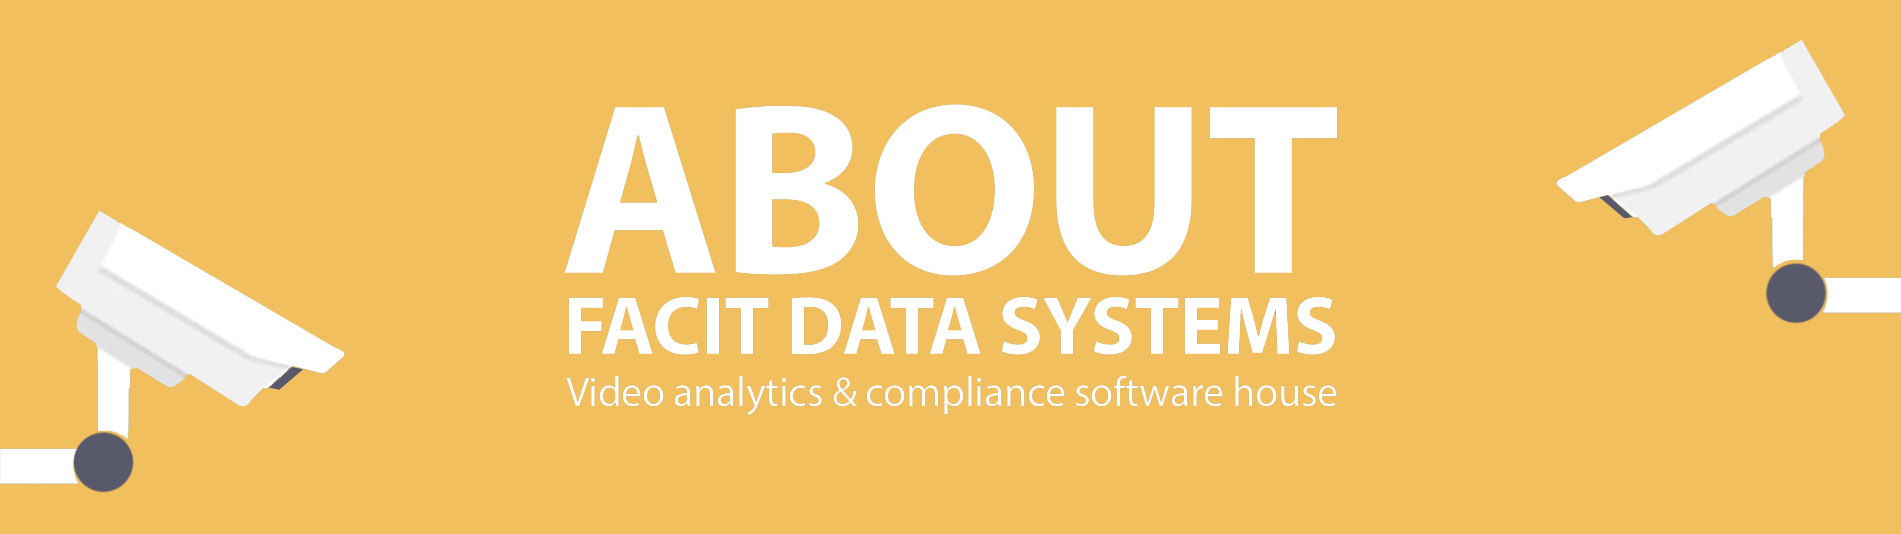 About Facit Data Systems